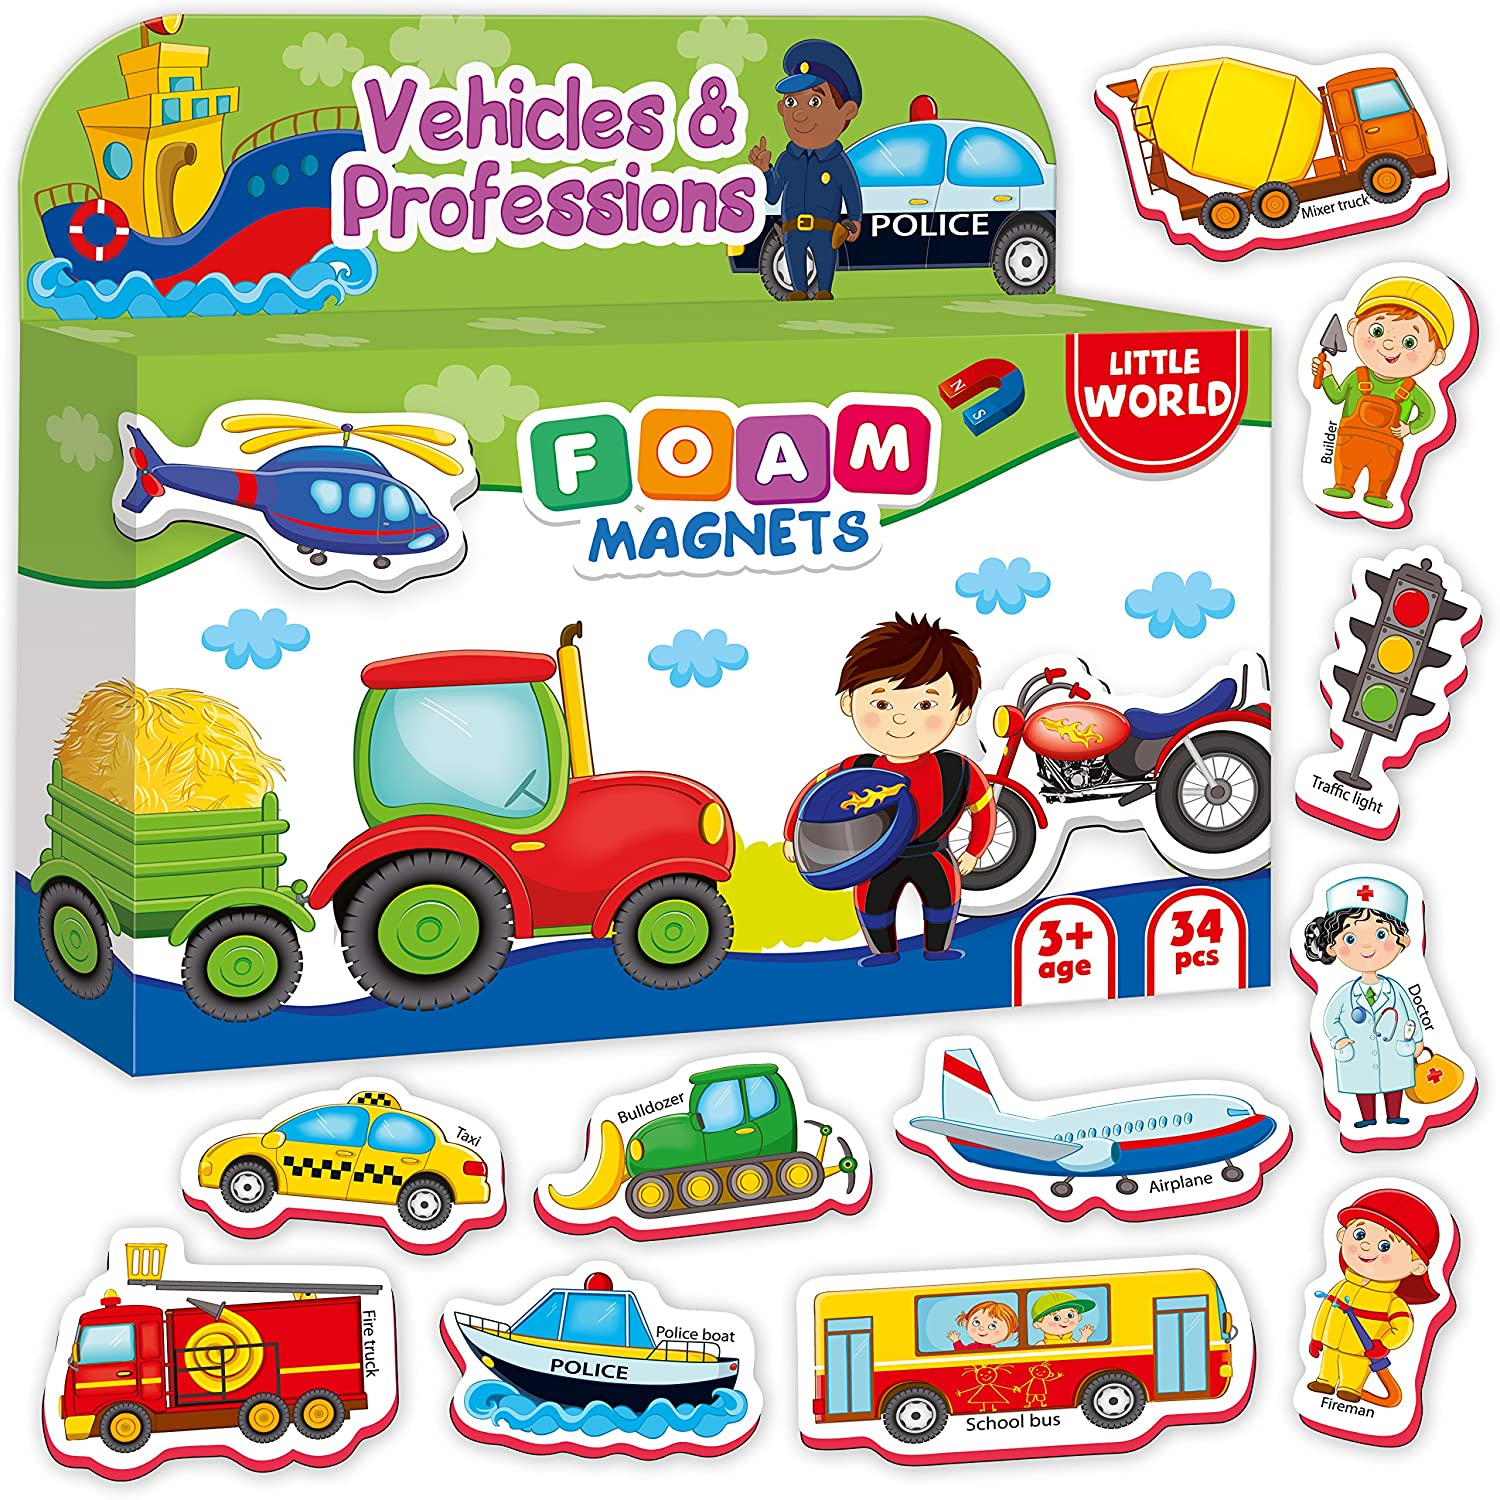 Refrigerator Magnets for Toddlers Kids VEHICLES and PROFESSIONS 34 PCS – Baby Magnets – Foam Magnets - Fridge Magnets for kids - Kids Fridge Magnets - Toddler Magnets for Refrigerator – Kids Magnets